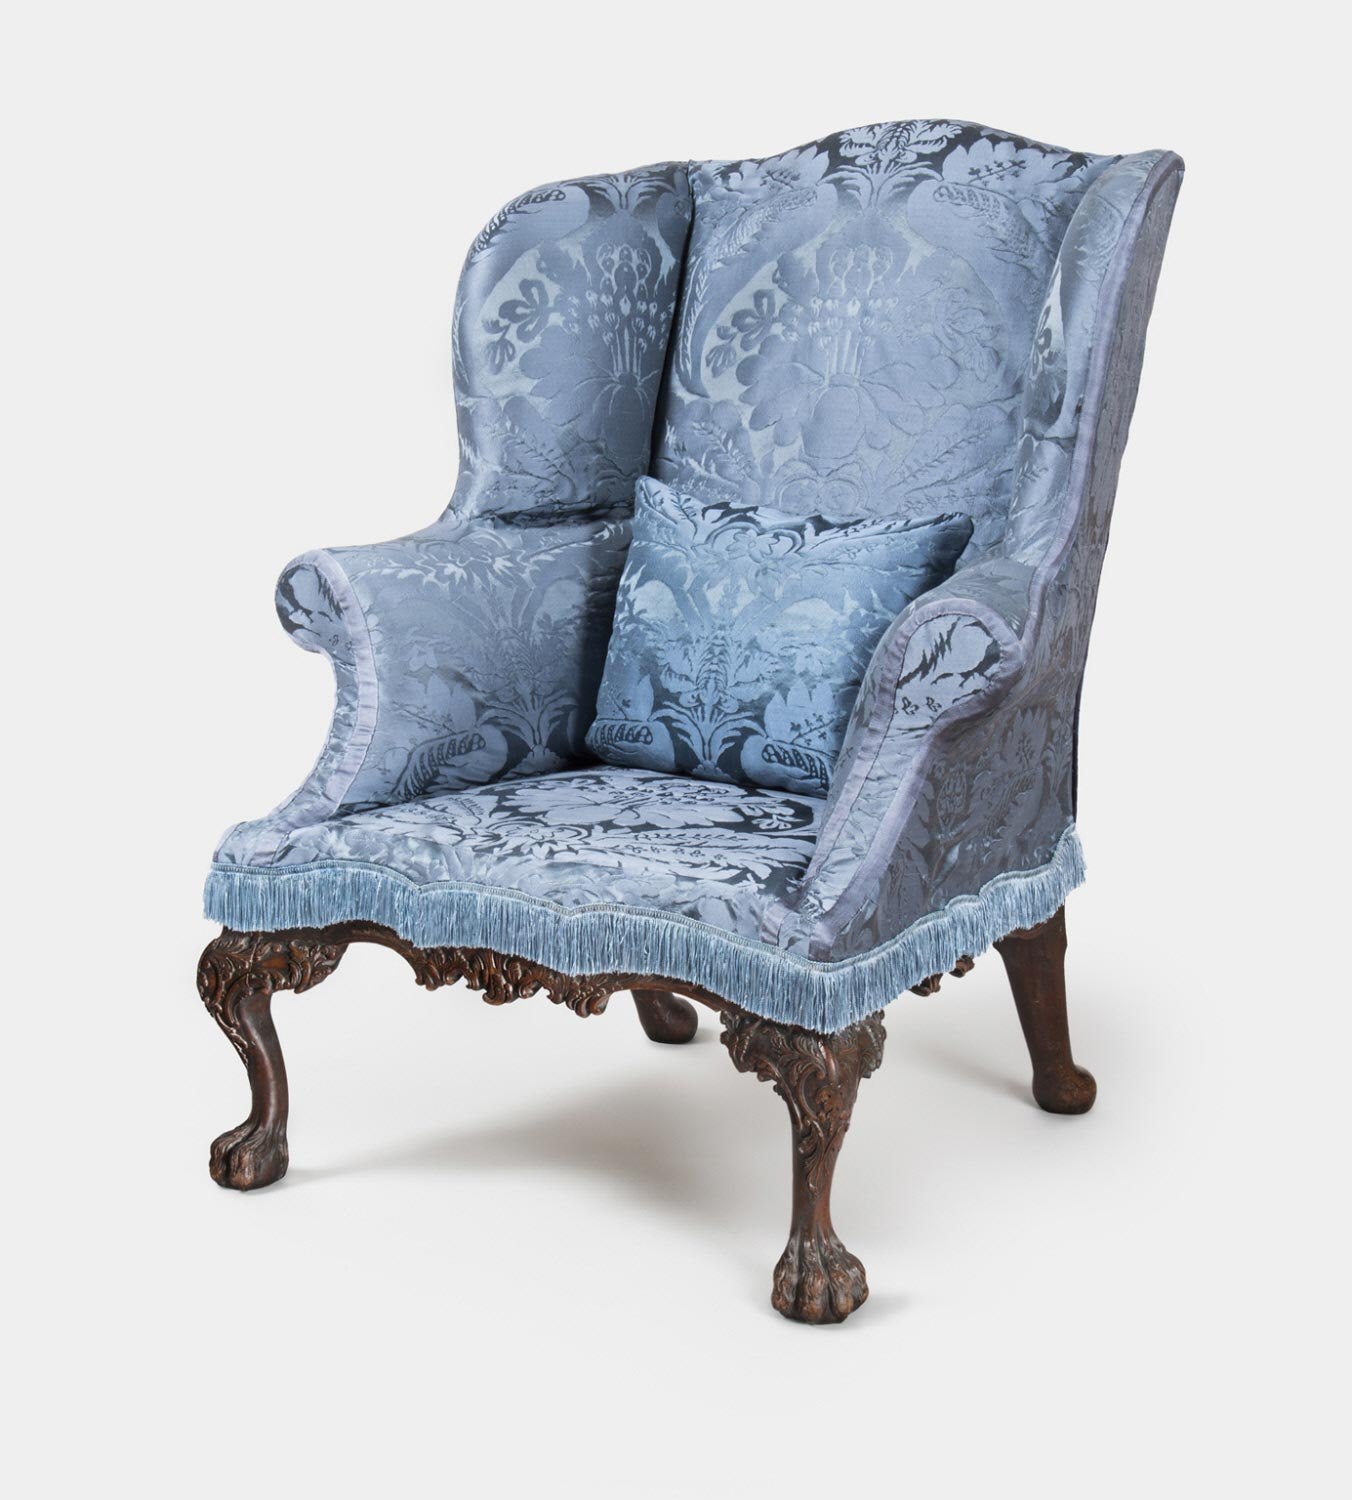 Plunkett Fleeson upholstered this elaborate easy chair a few years before the Revolutionary War.